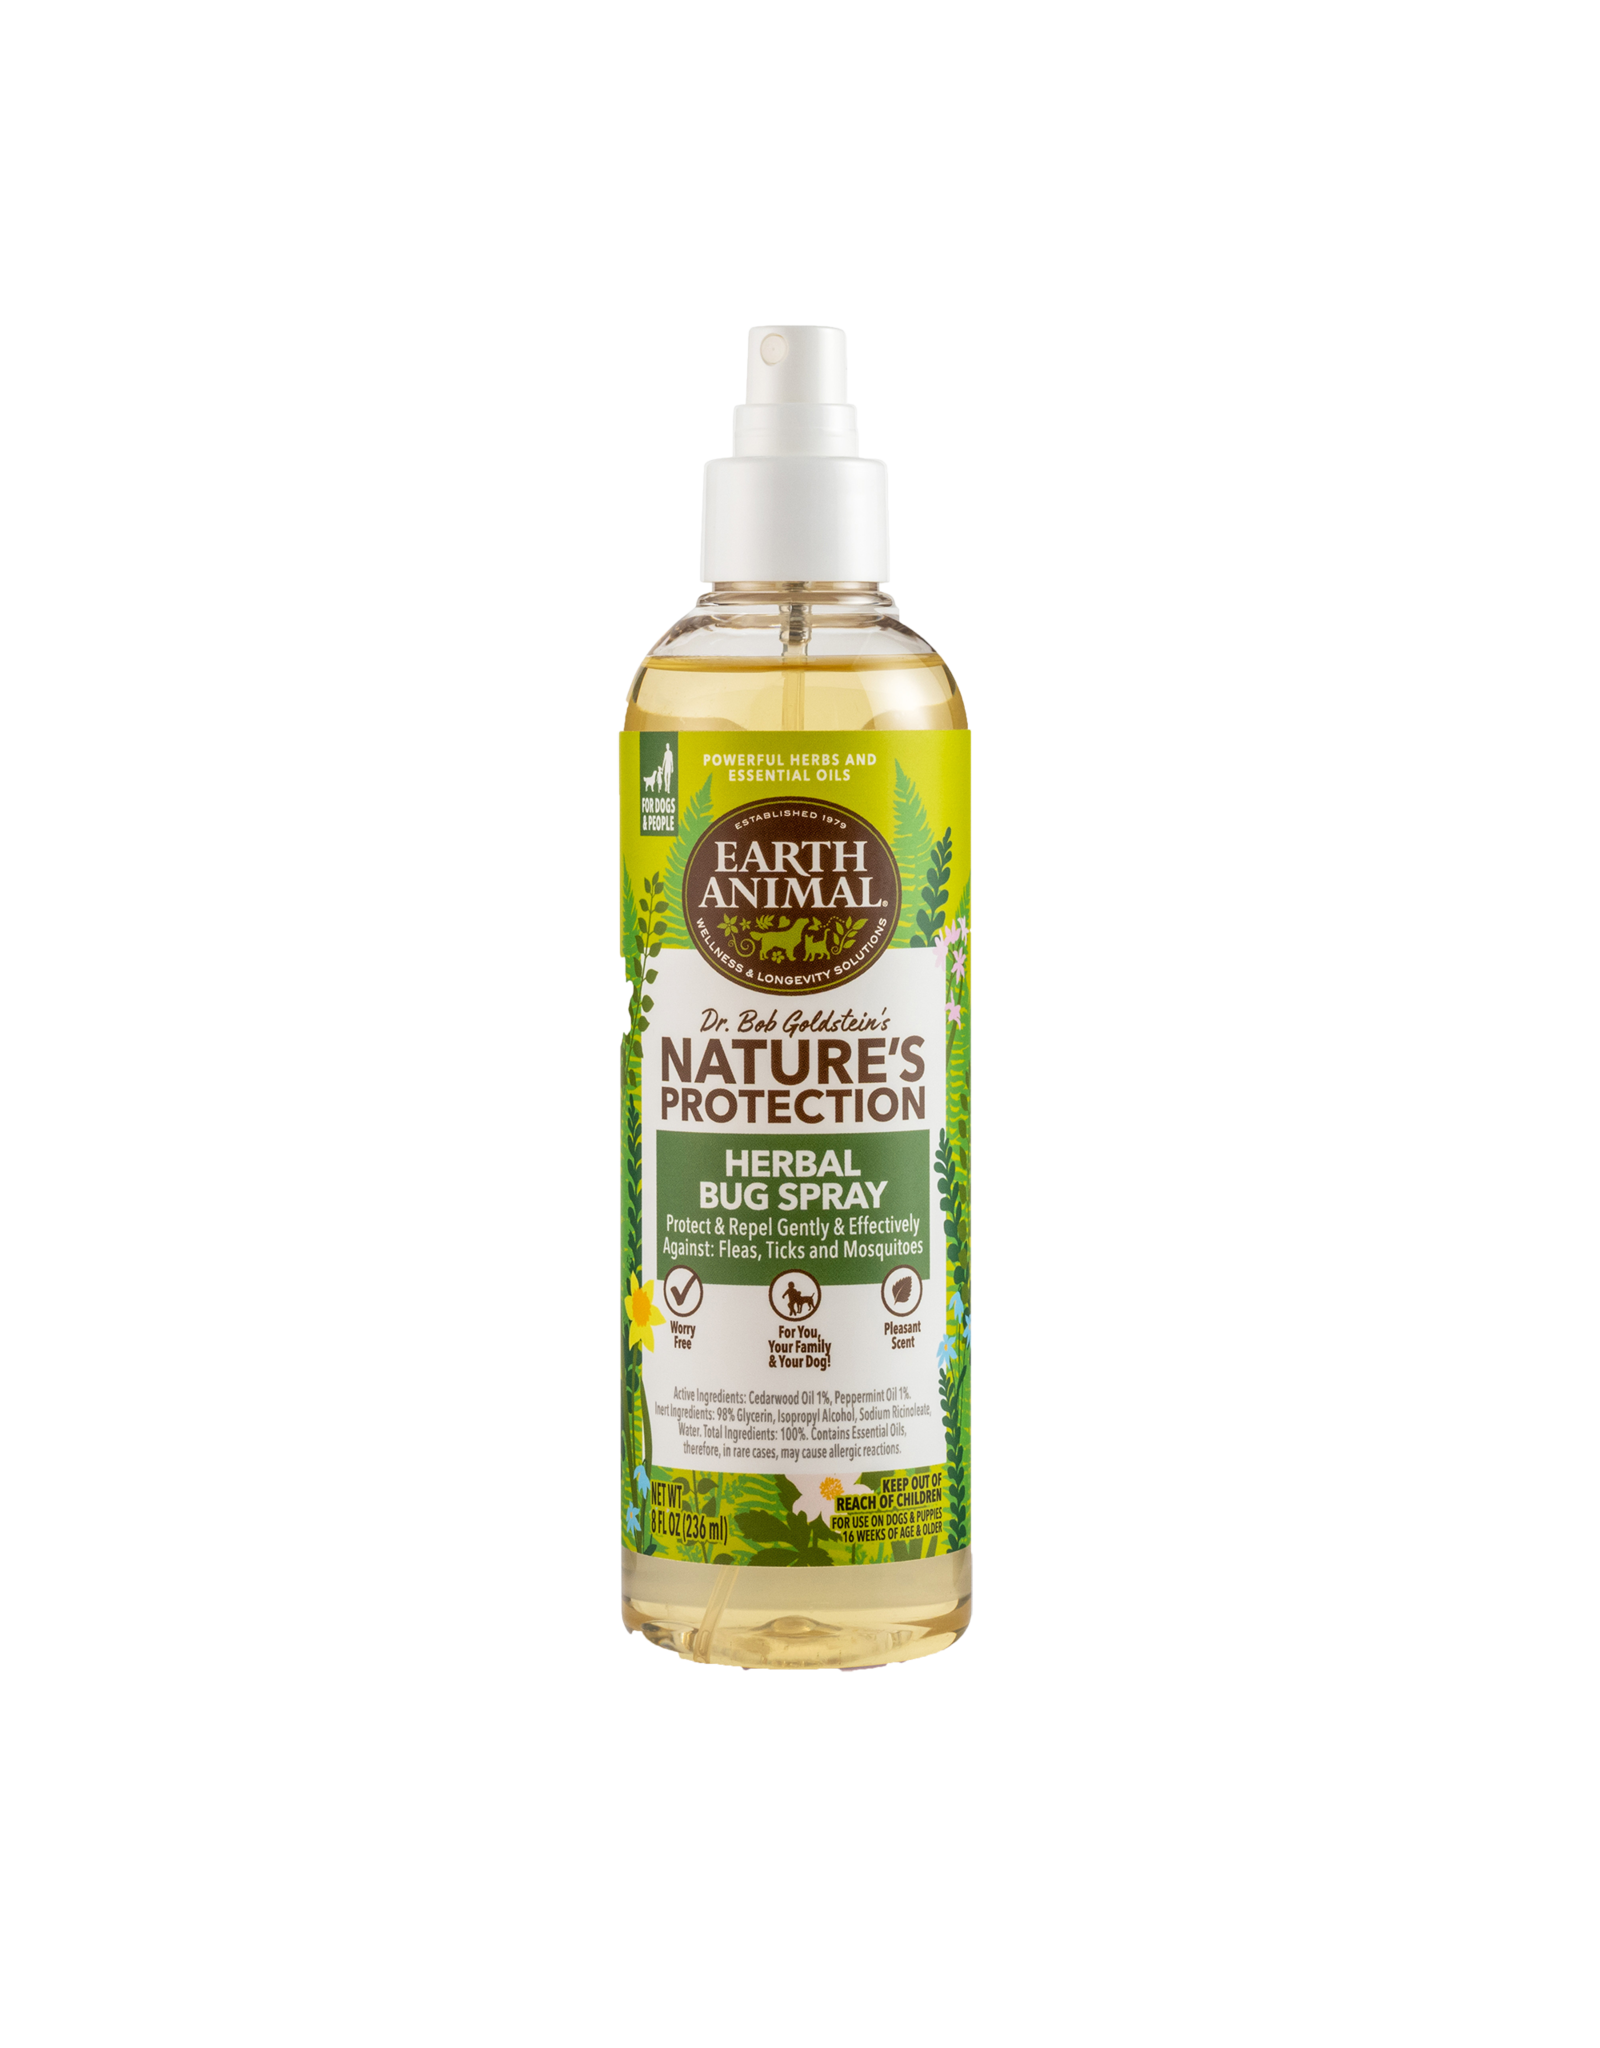 Earth Animal Nature's Protection: Bug Spray, 8 oz